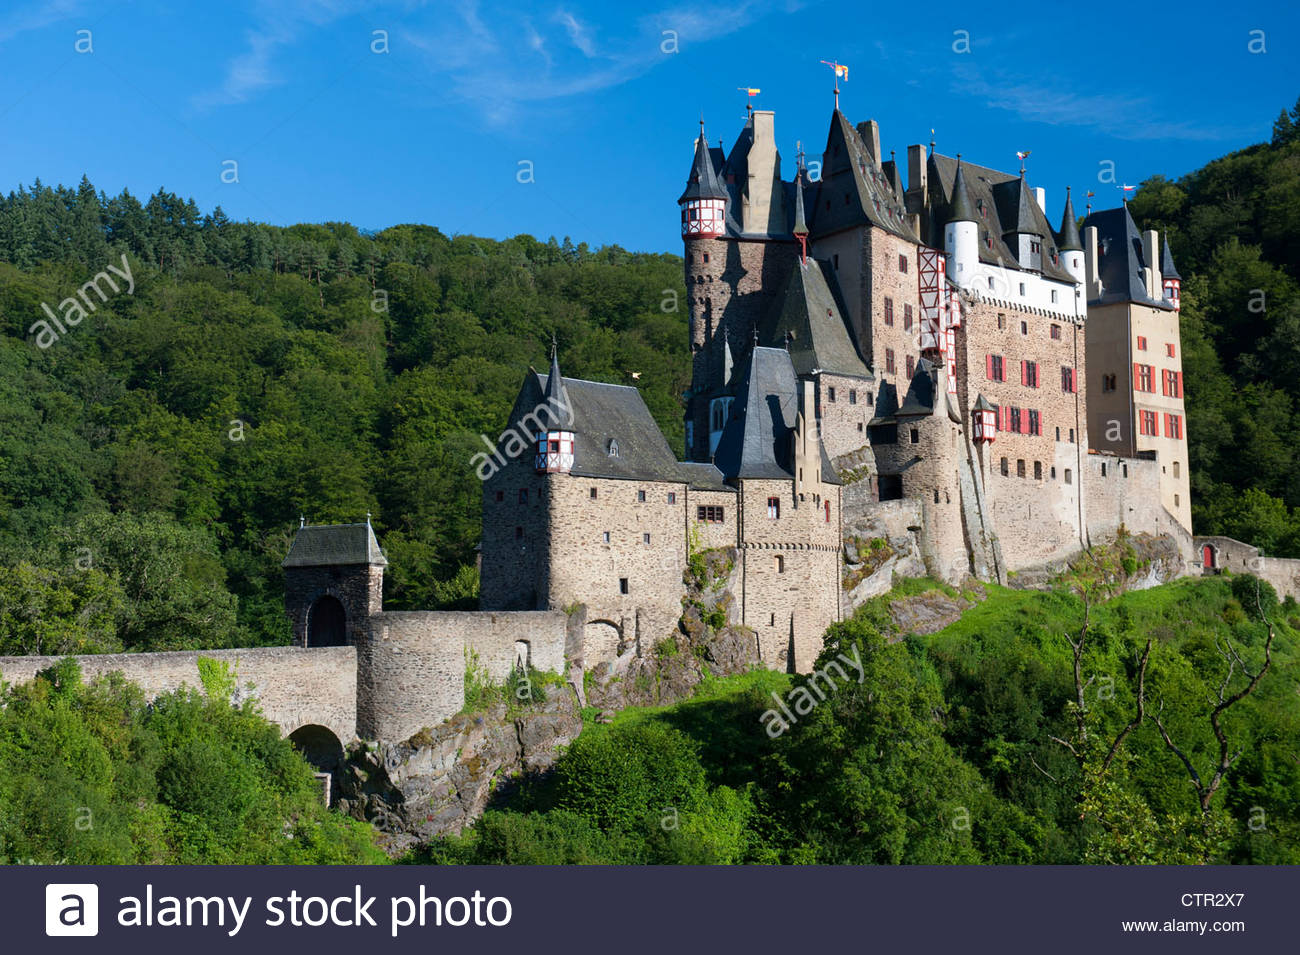 Burg Eltz The Moselle Valley, Burg Eltz castle near Mosel Valley in Germany Stock Photo, Royalty ...